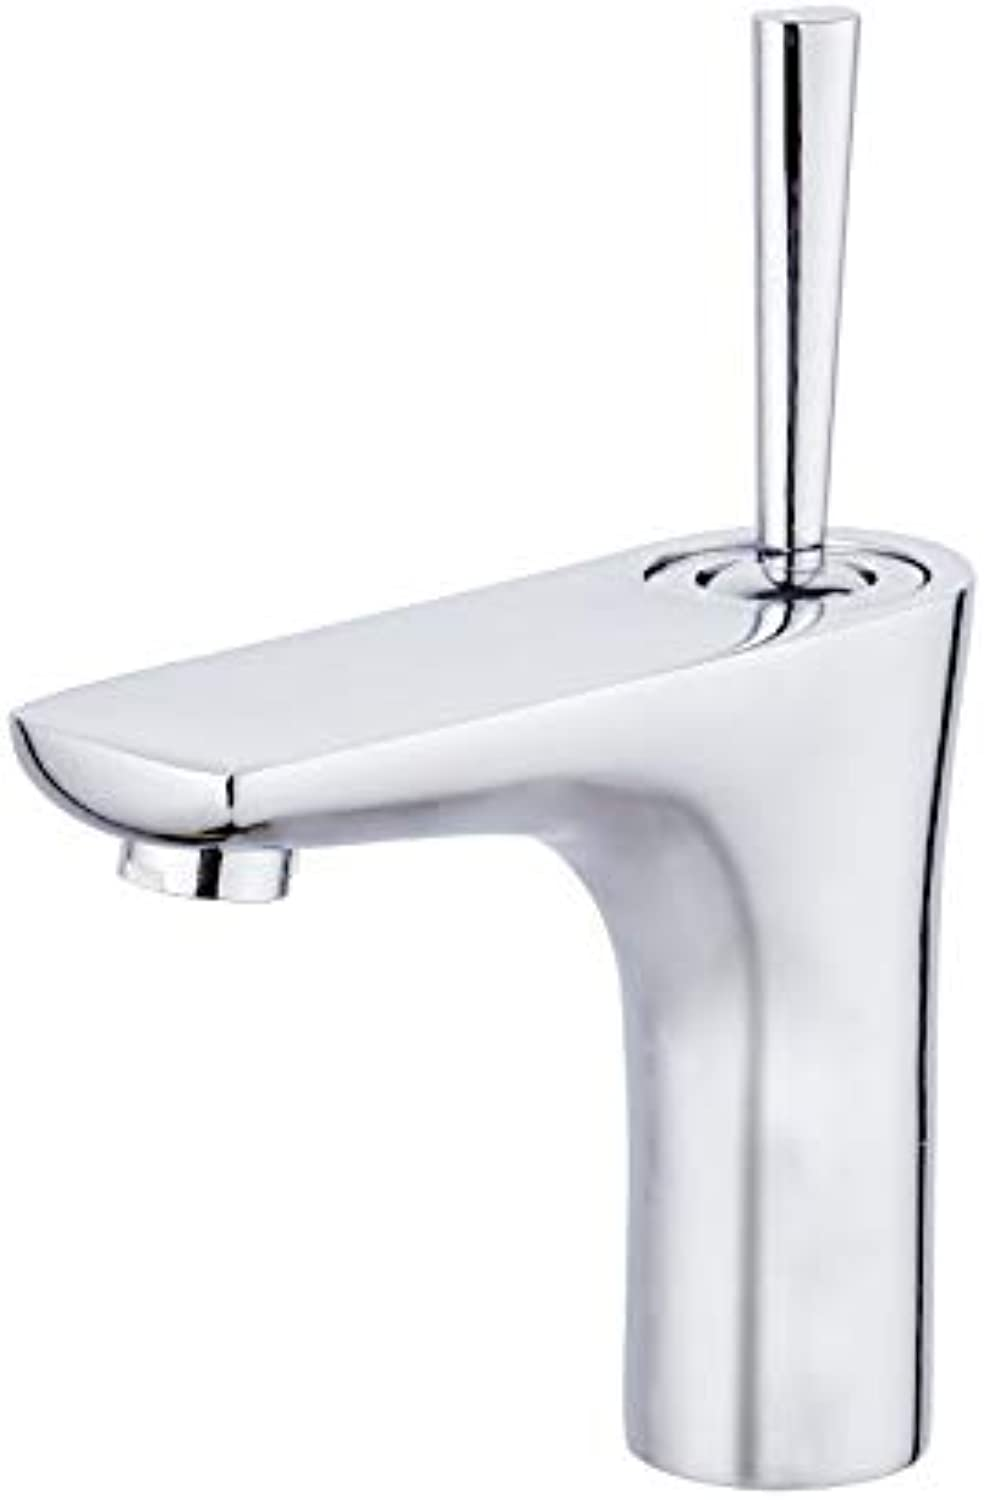 Pen Handle Washbasin Faucet Universal Spool Core Copper Basin Above Counter Basin Faucet Standard - No Inlet Pipe